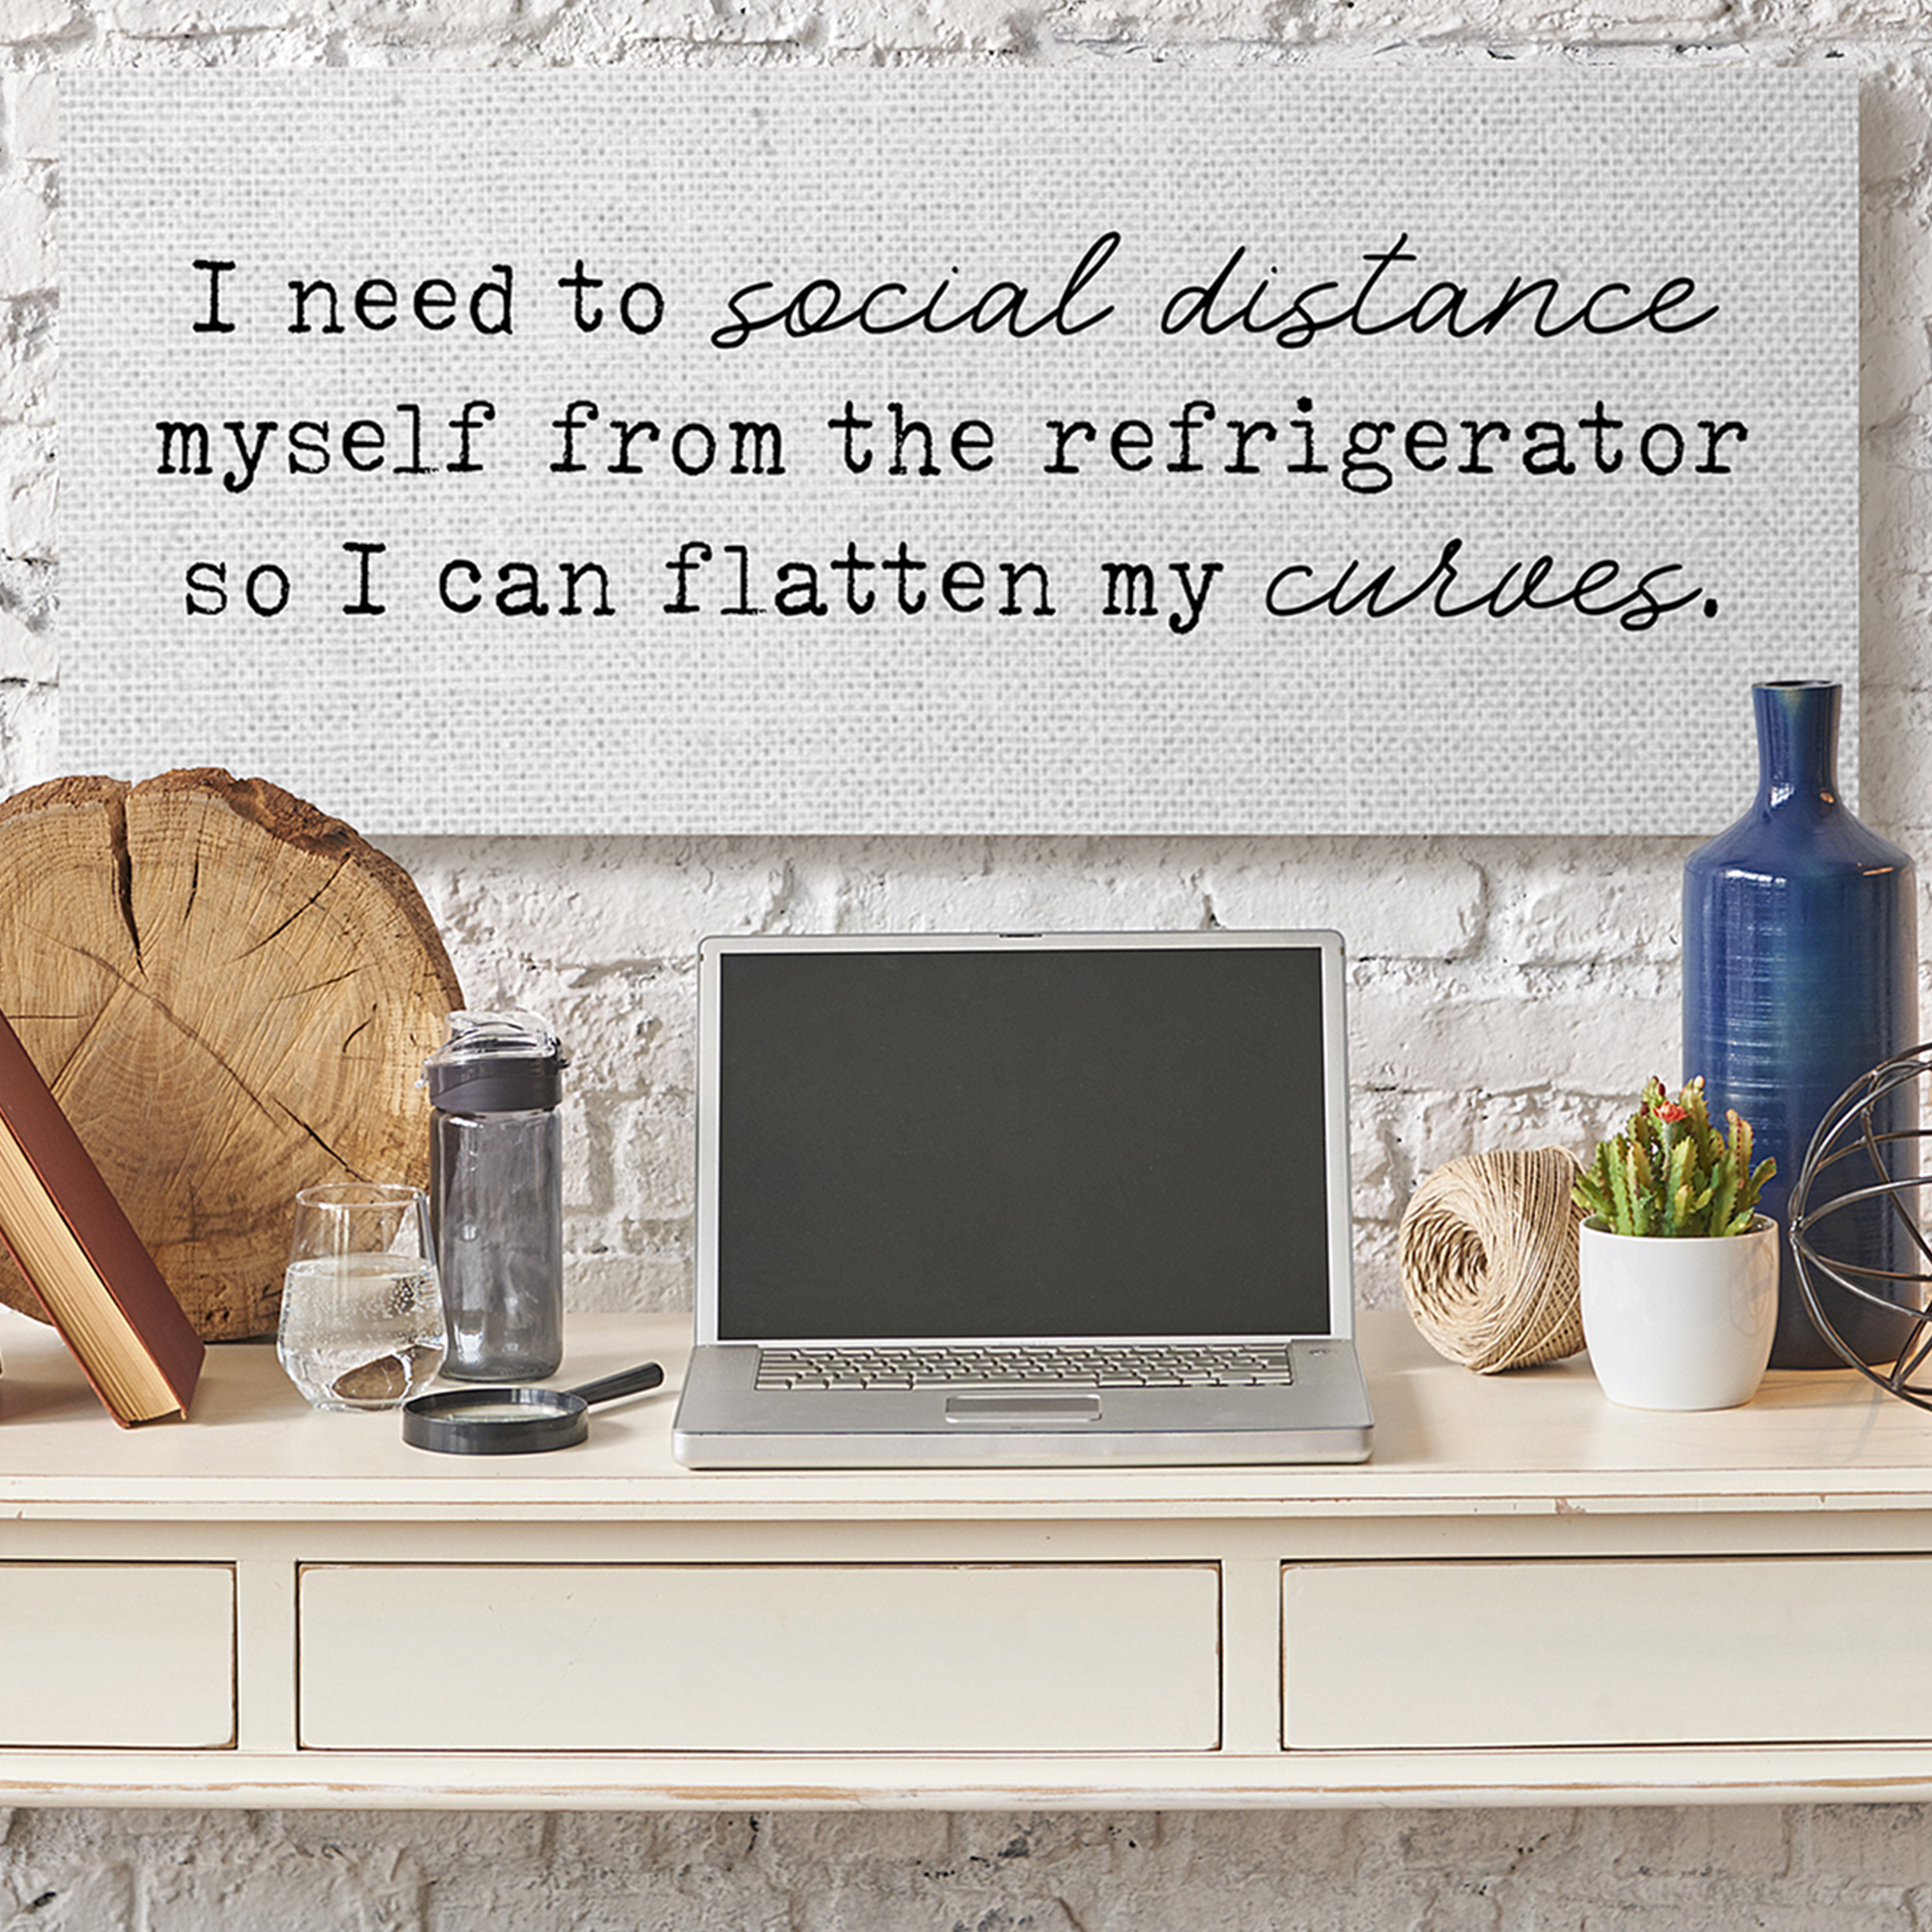 Social Distance from Refrigerator Funny Kitchen Humor Wall Plaque Art by LUX + Me Design